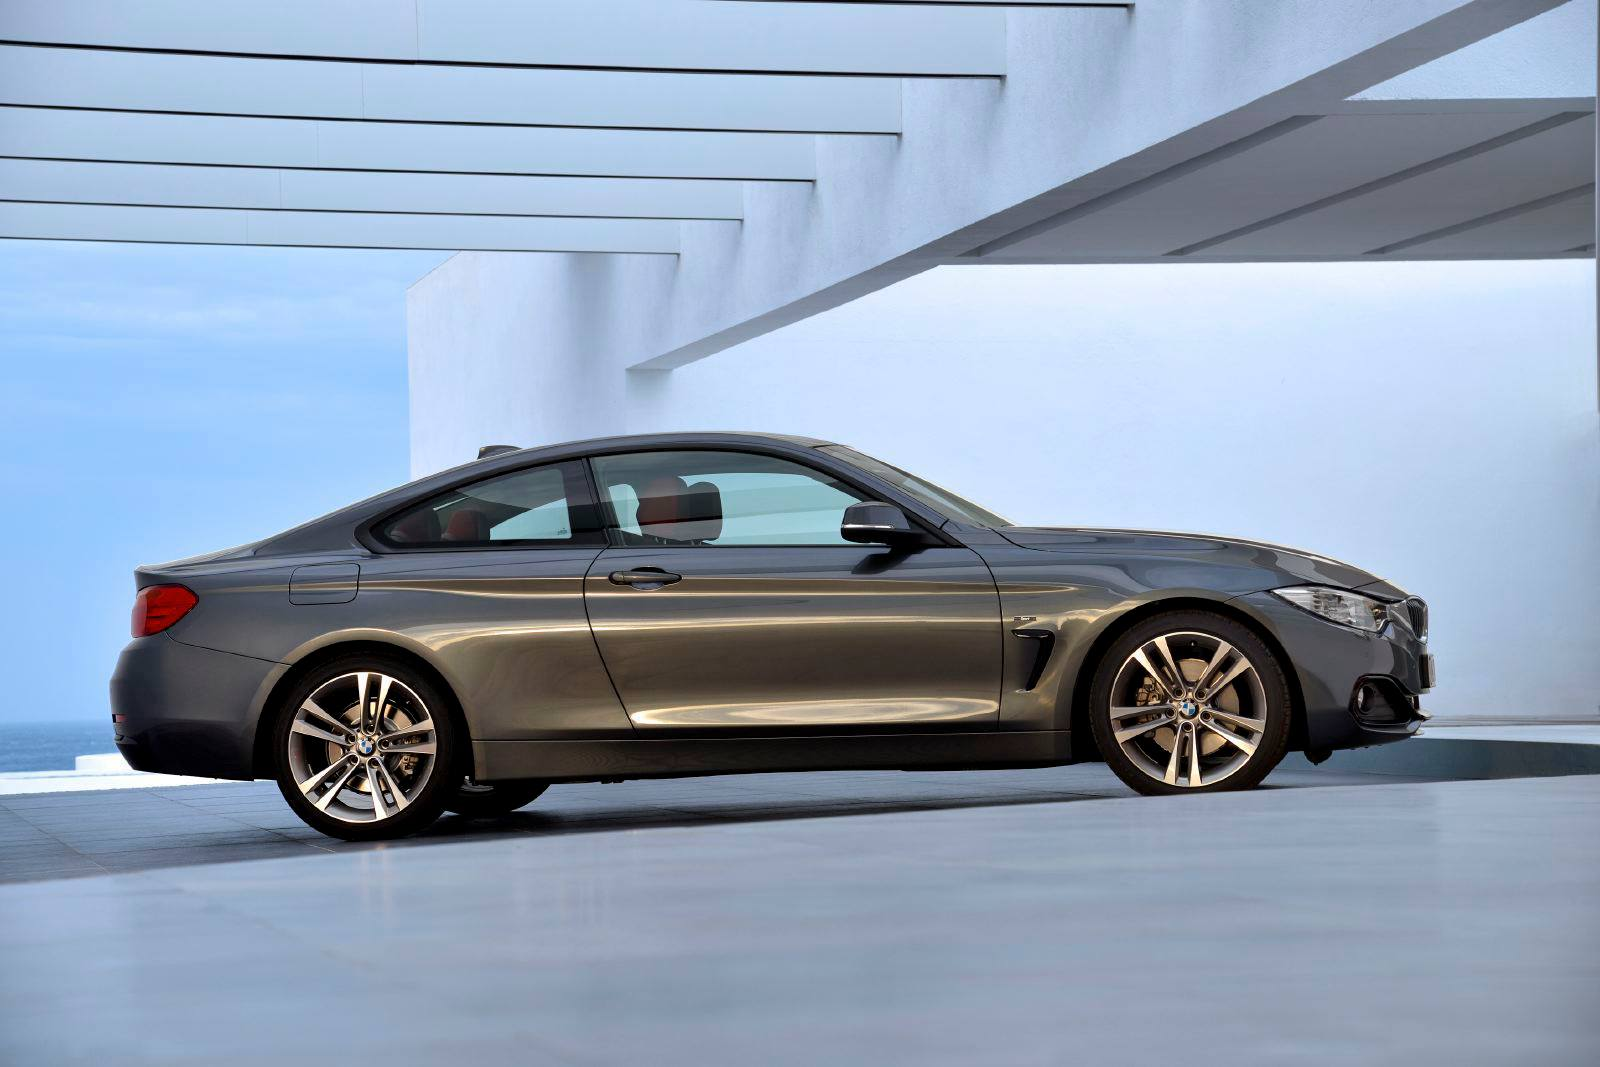 2014 bmw 4 series coupe leaked images photo gallery autoblog. Black Bedroom Furniture Sets. Home Design Ideas